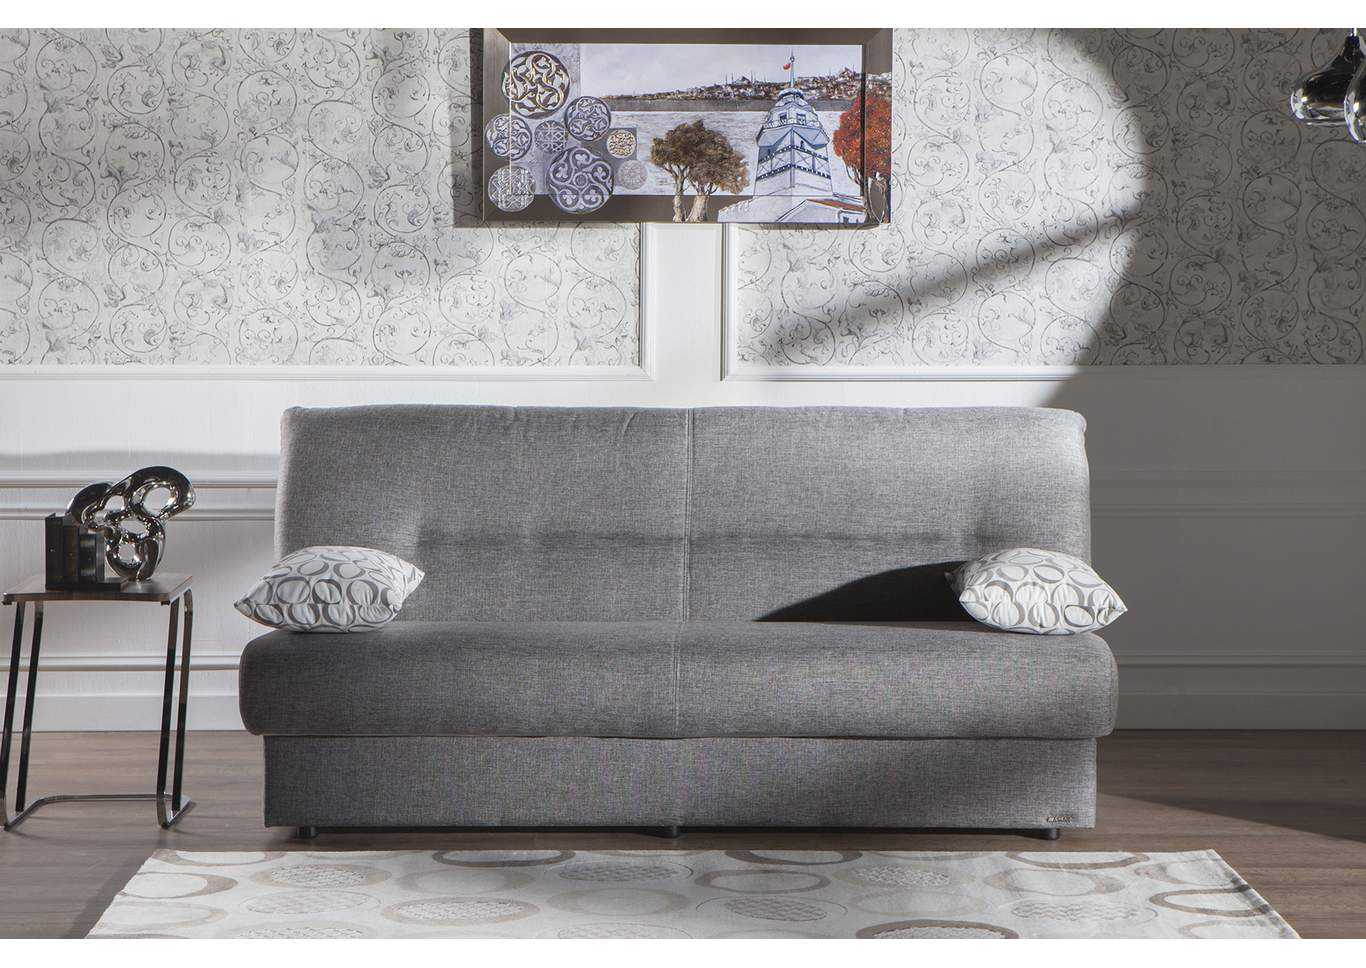 Regata Diego Gray 3 Seat Sleeper Sofa,Hudson Furniture & Bedding